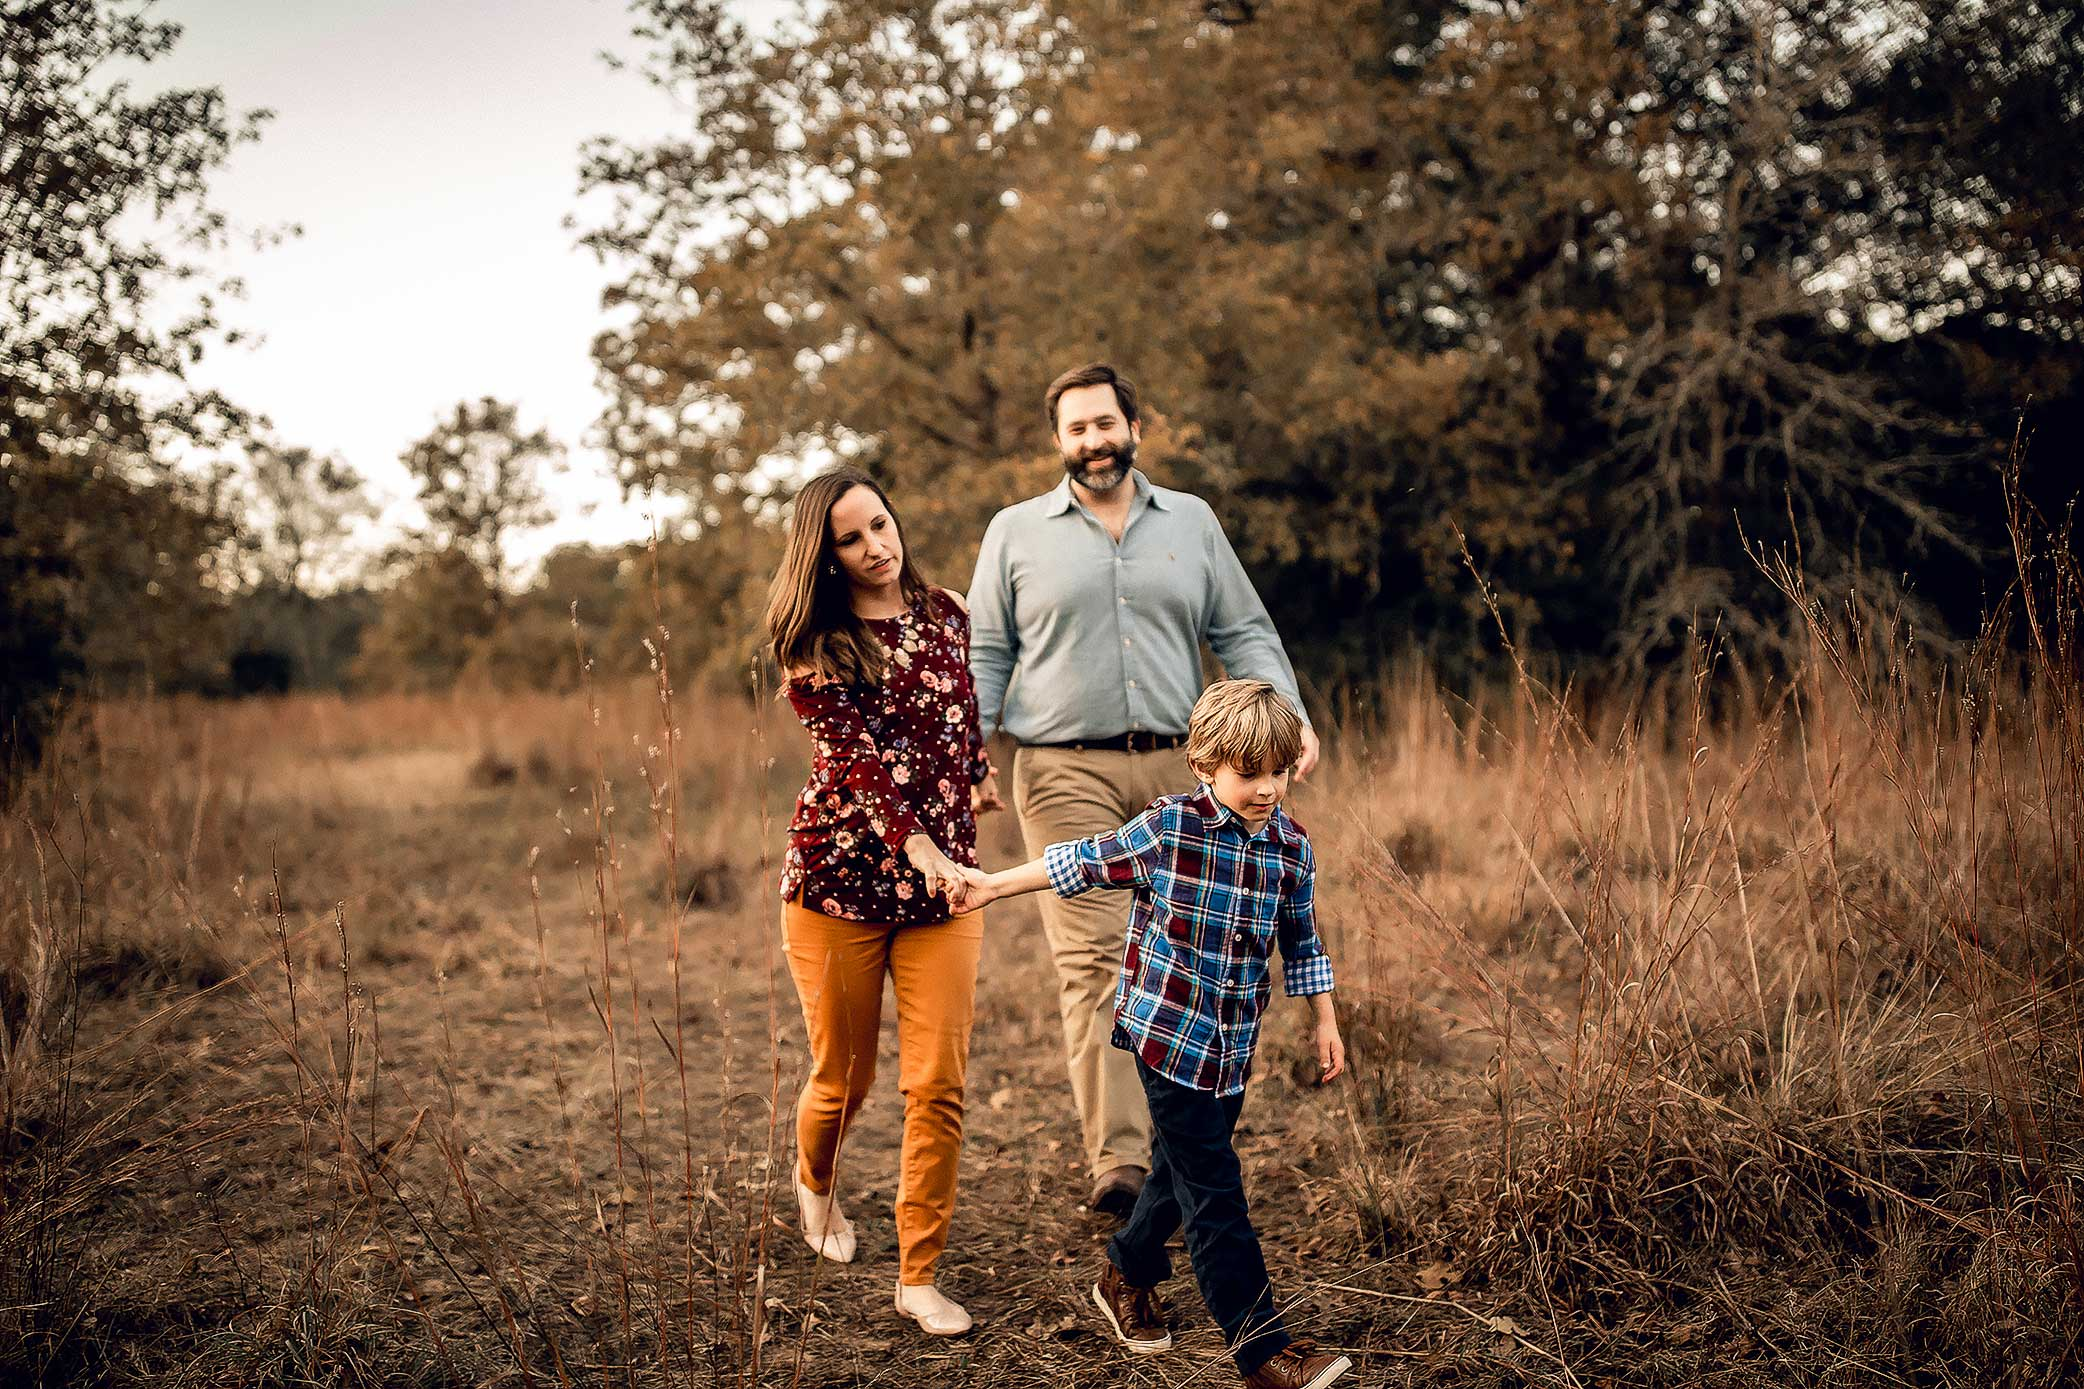 shelby-schiller-photography-family-walking-trails-holding-hands-for-an-adventure.jpg